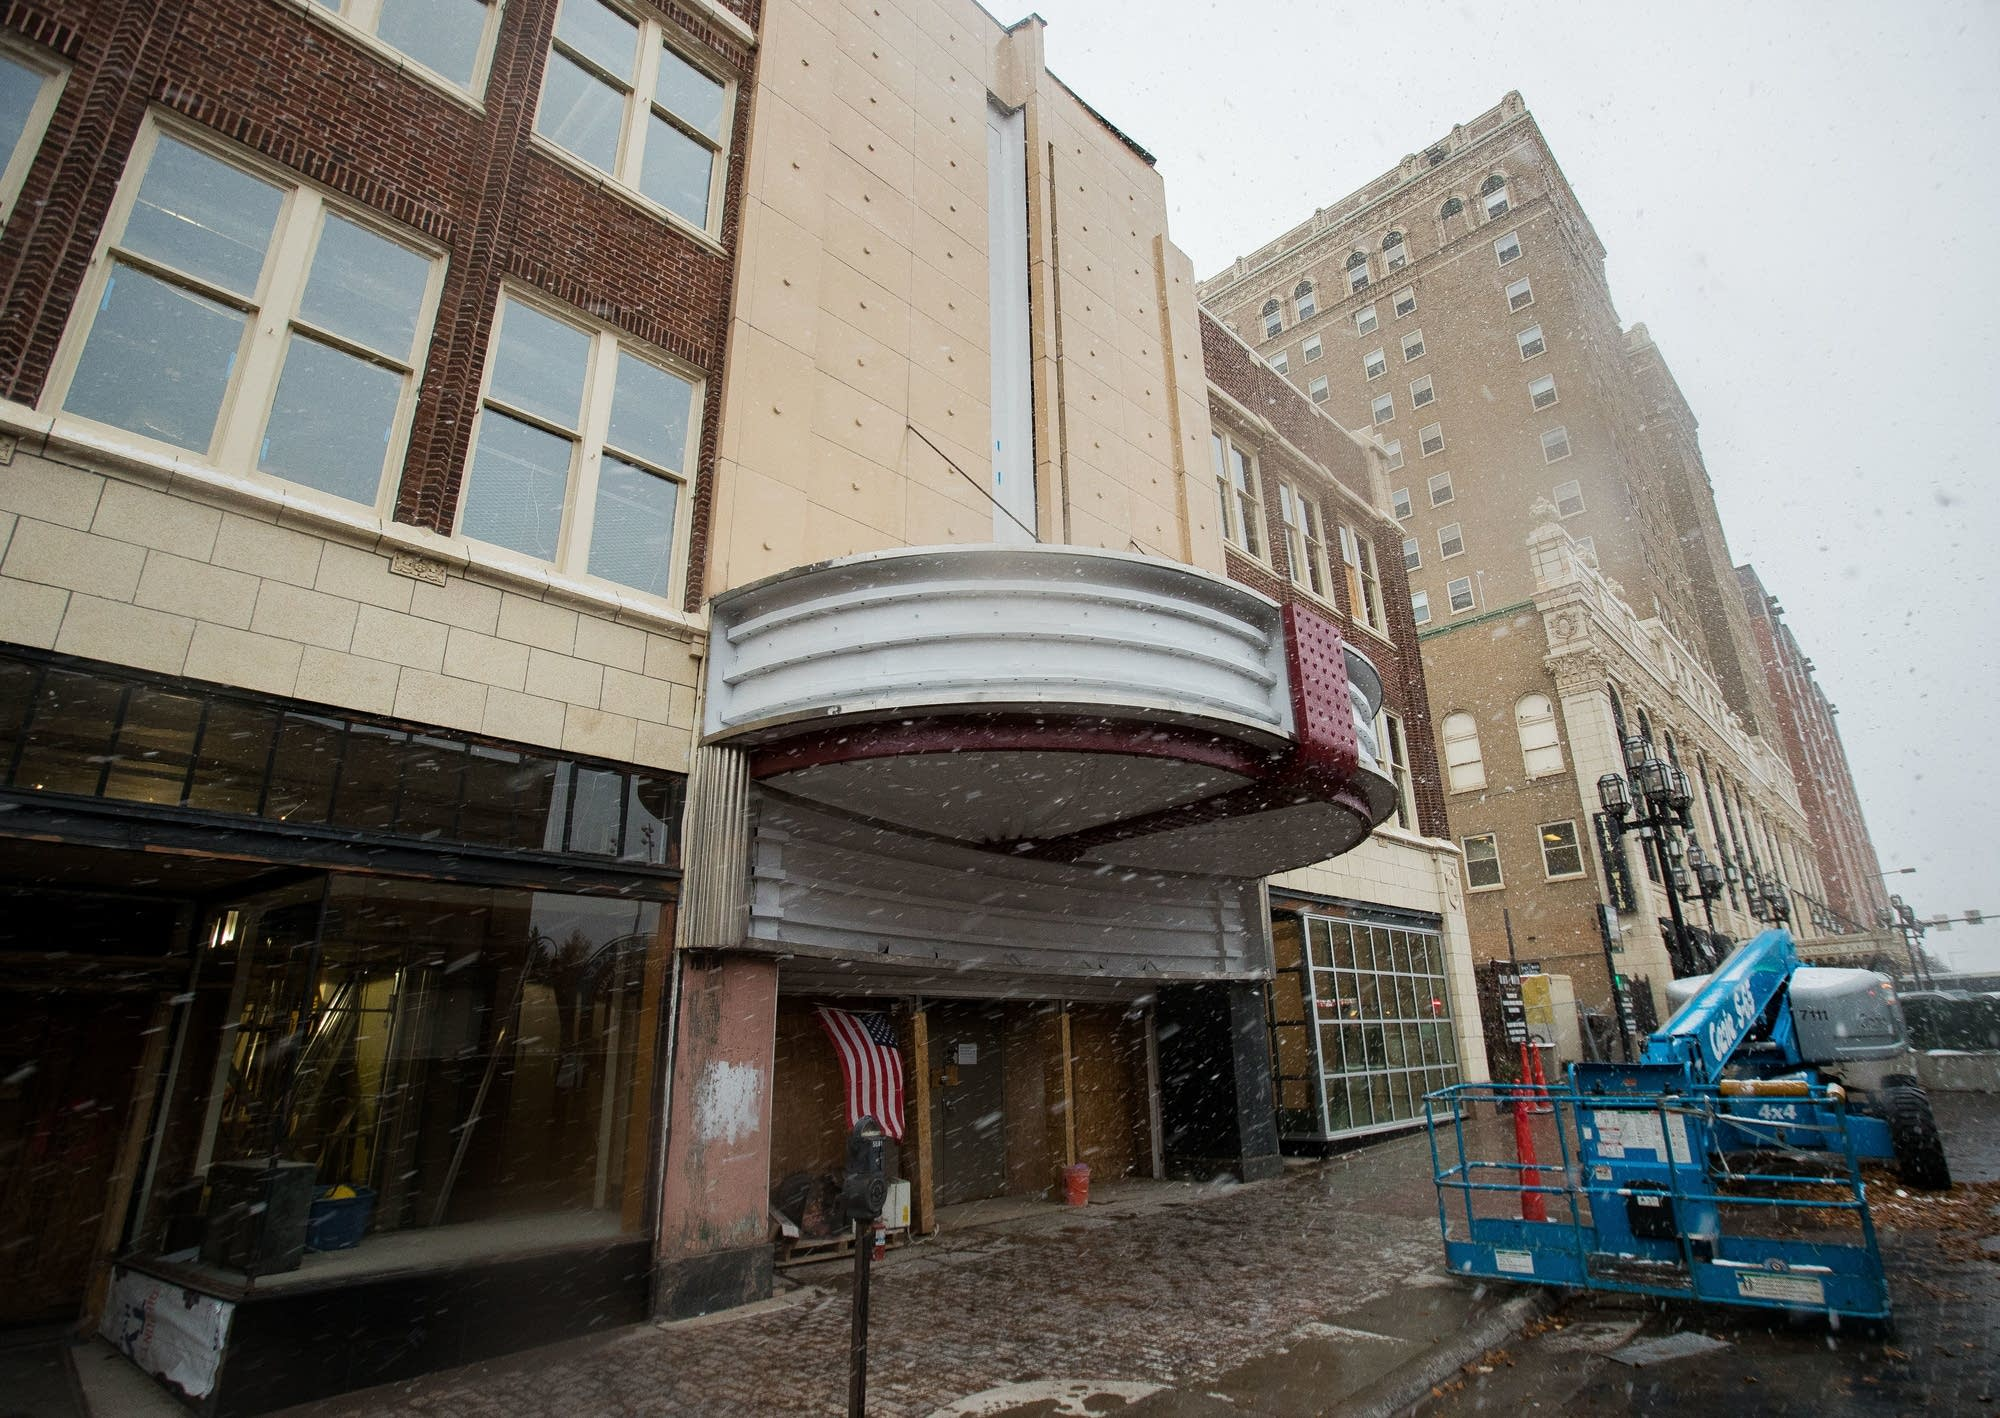 Snow falls outside as work continues on the NorShor Theater Nov. 1, 2017.